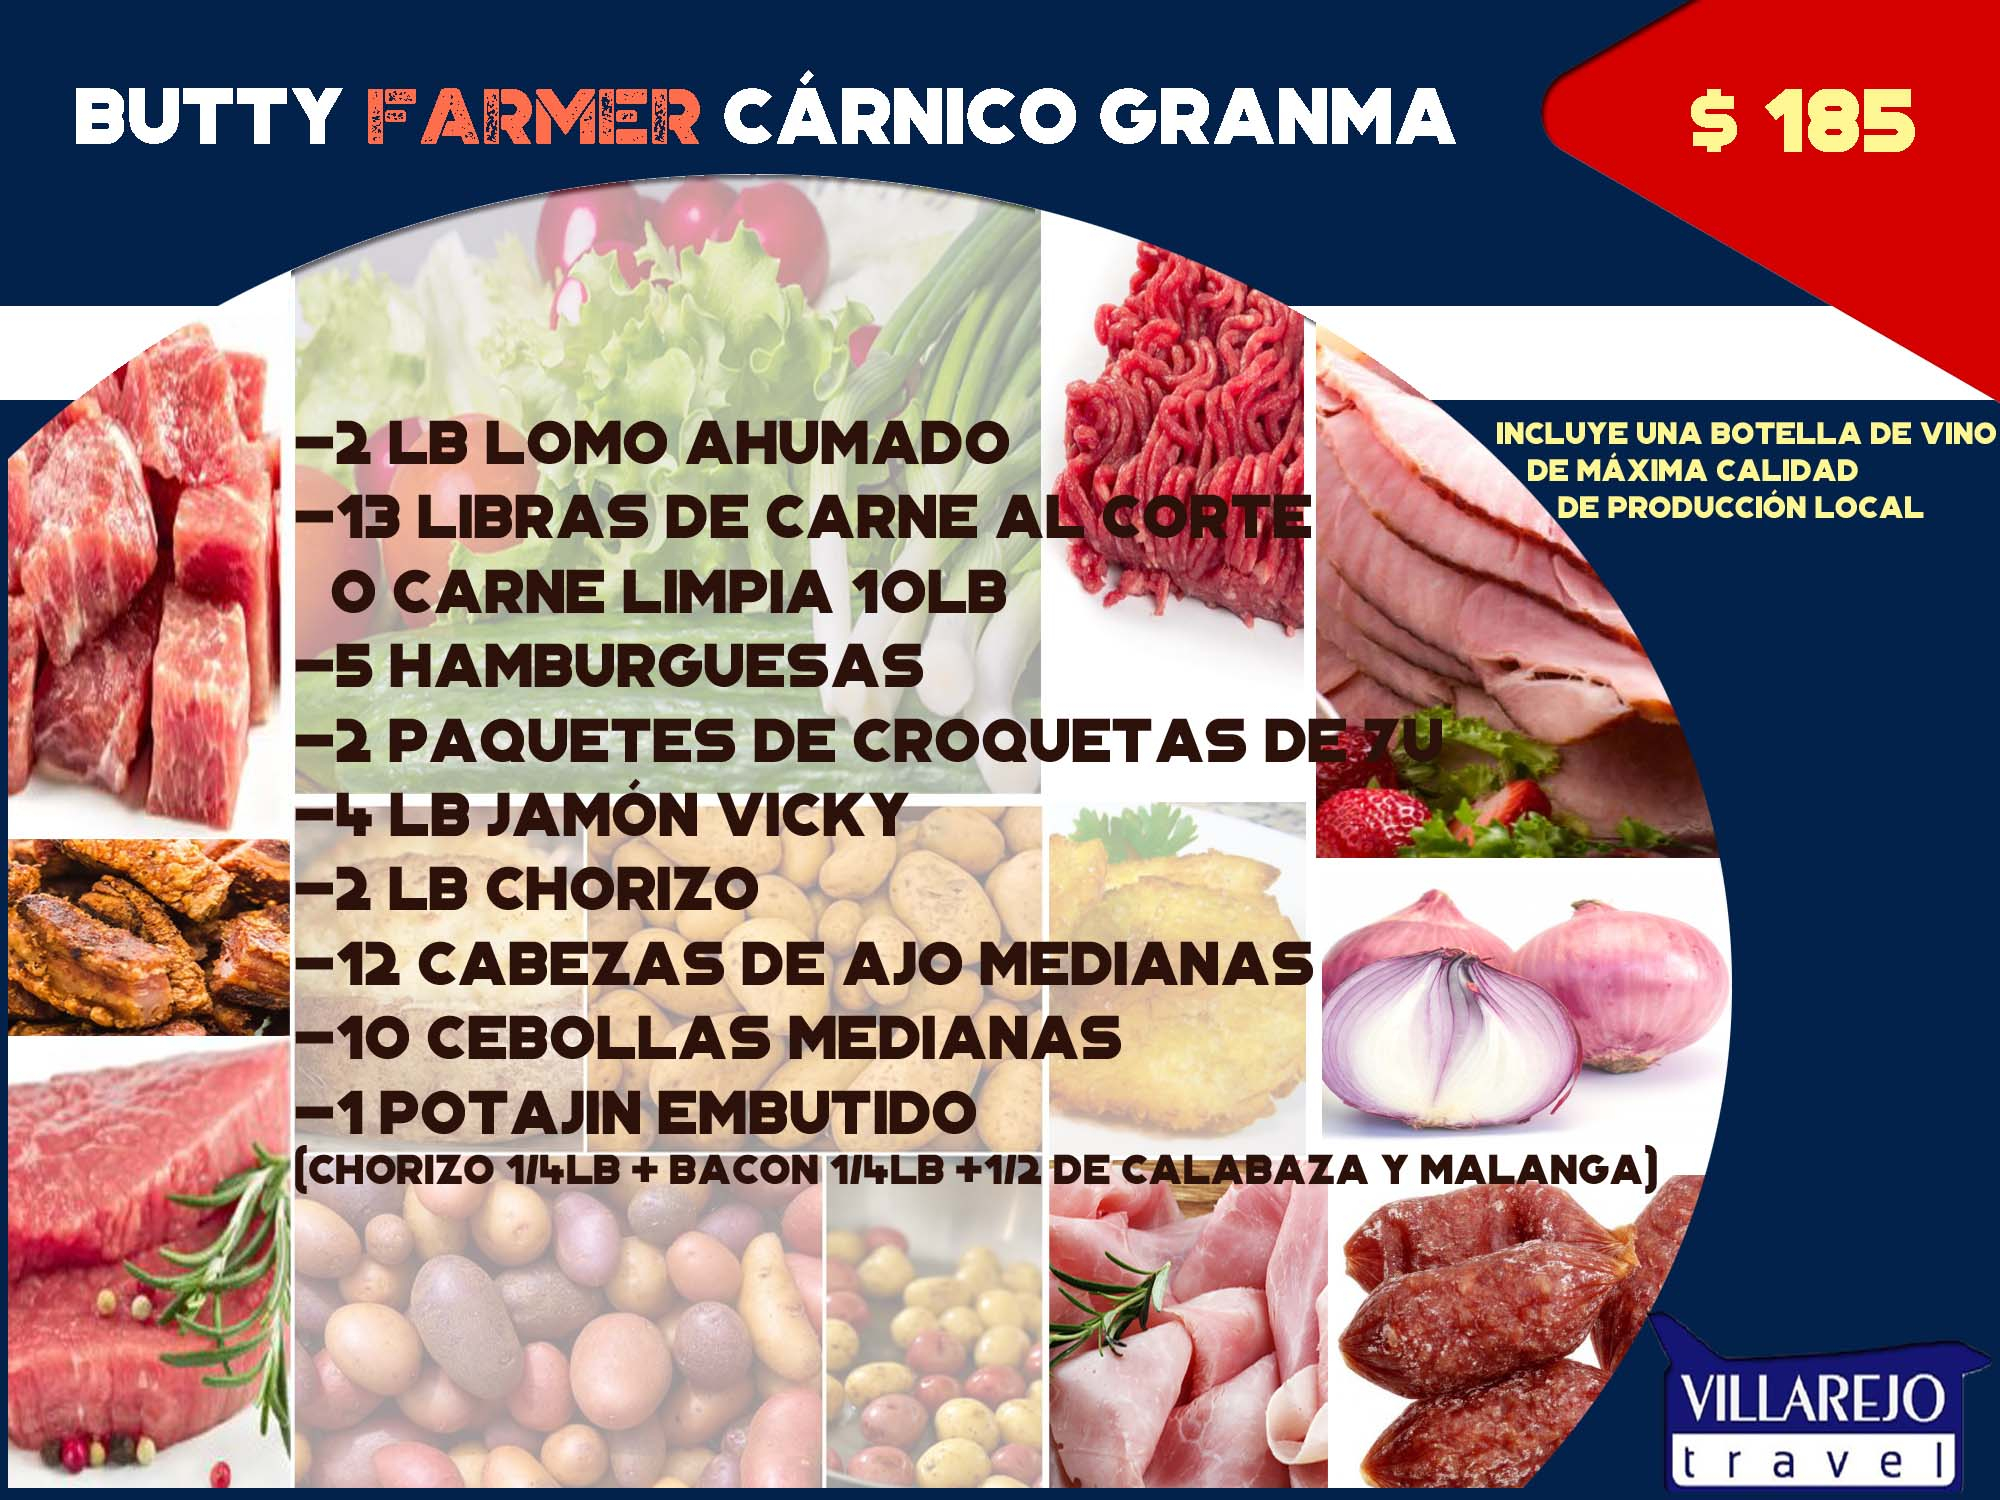 Butty Farmer Cárnico Granma